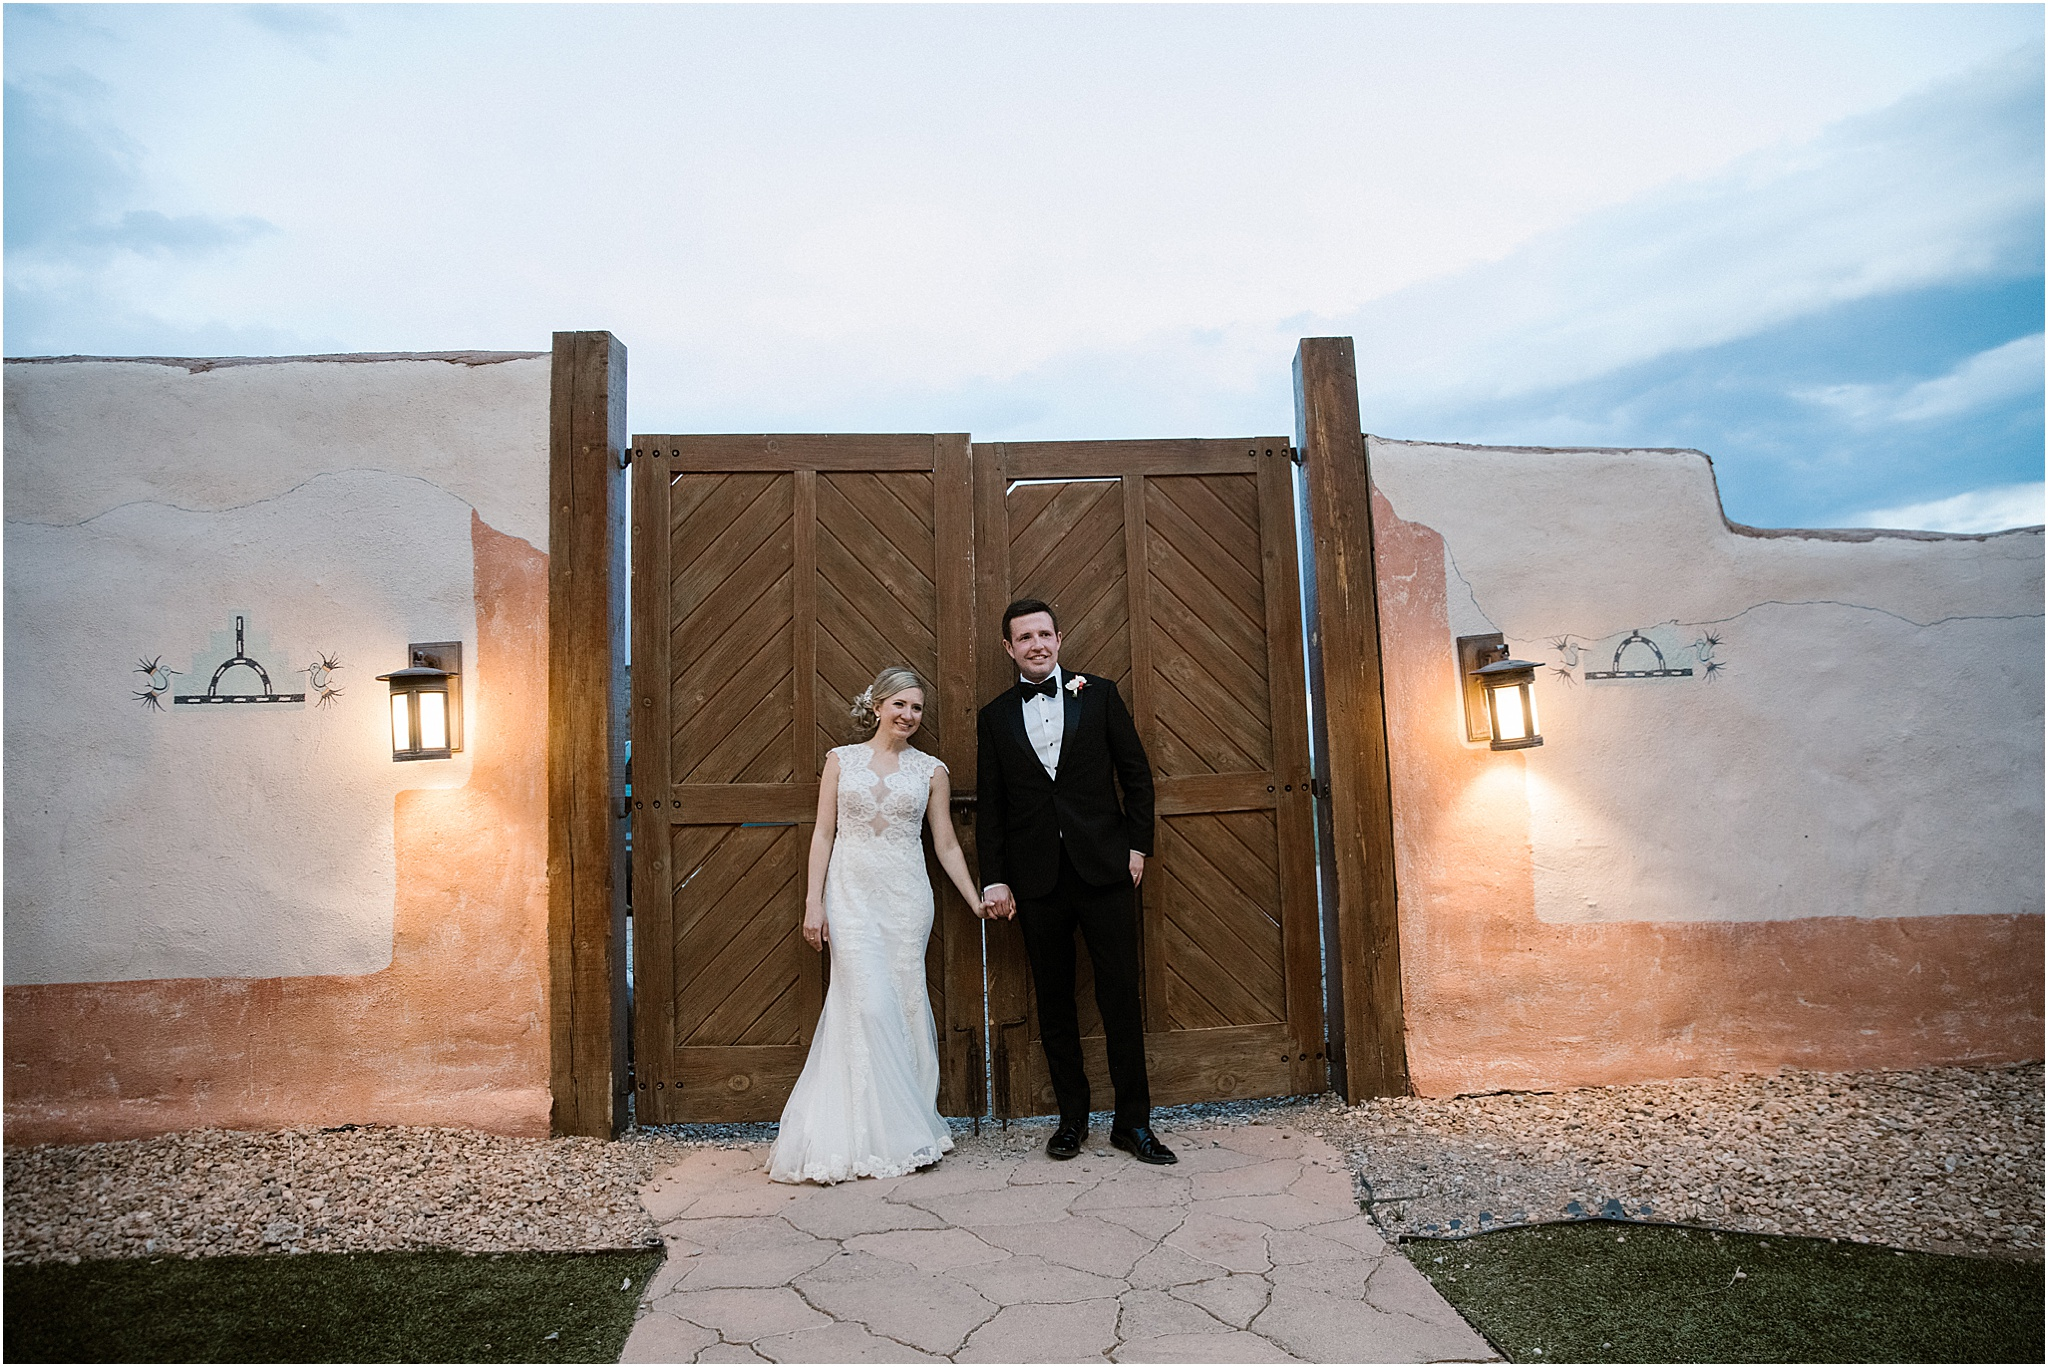 JENNA_JEROME_BLUE ROSE PHOTOGRAPHY_ABQ WEDDING_56